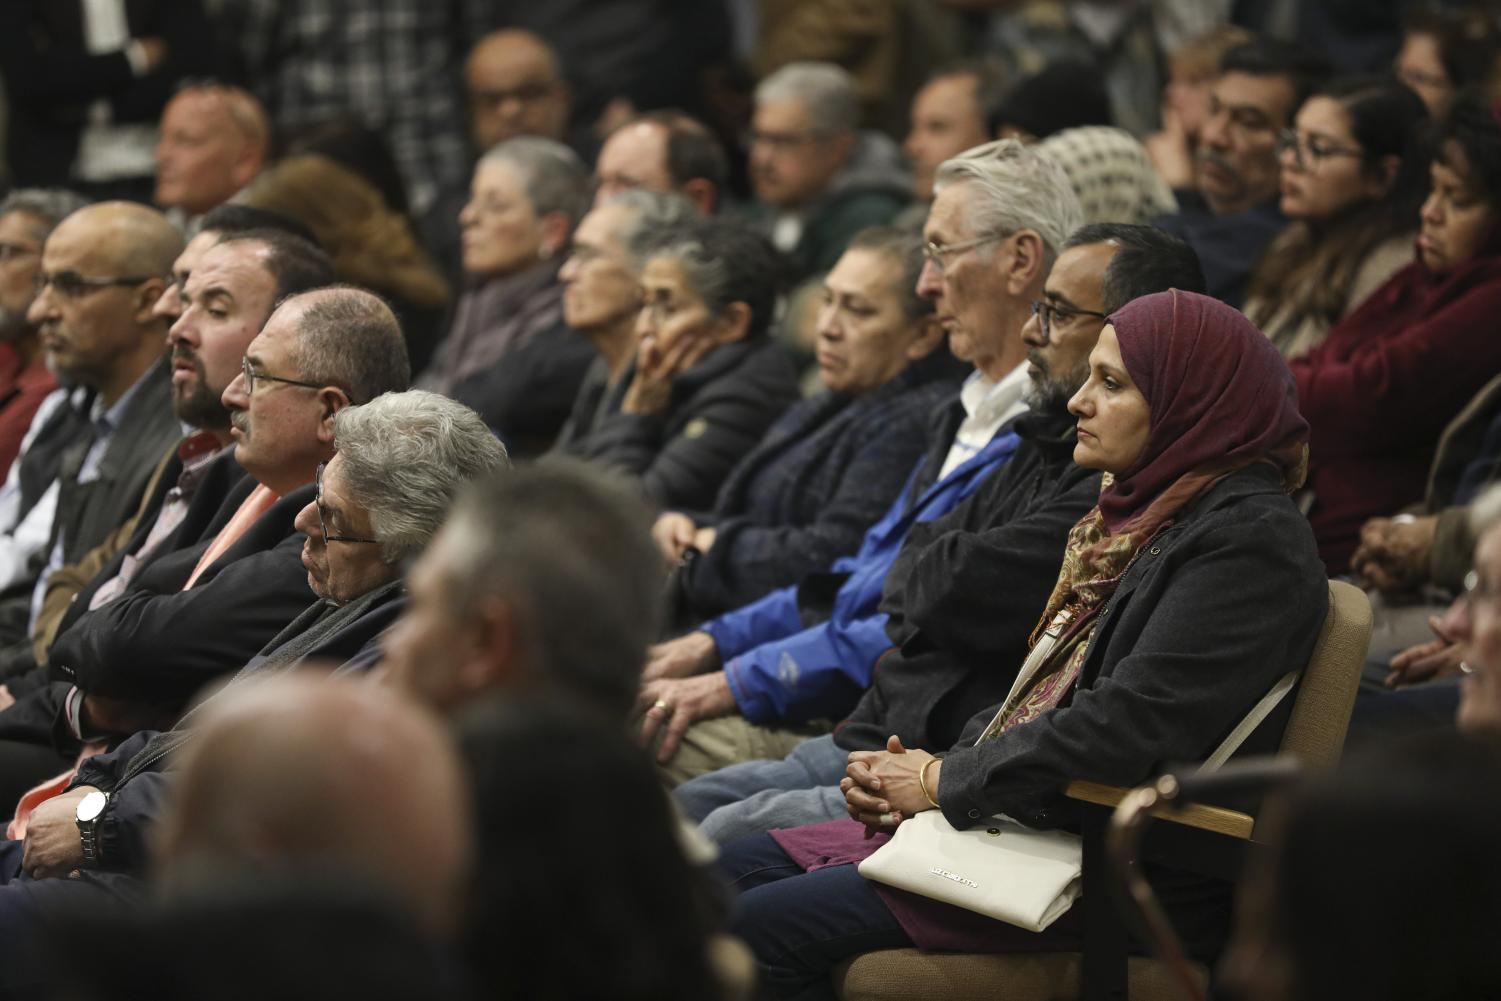 Crowds of Simi Valley residents pack the council chamber of Simi Valley City Hall during the council meeting on Monday, Feb. 10. Many people attended in order to either support or oppose item 4A, an item addressing the expansion of a local mosque. Photo credit: Ryan Bough